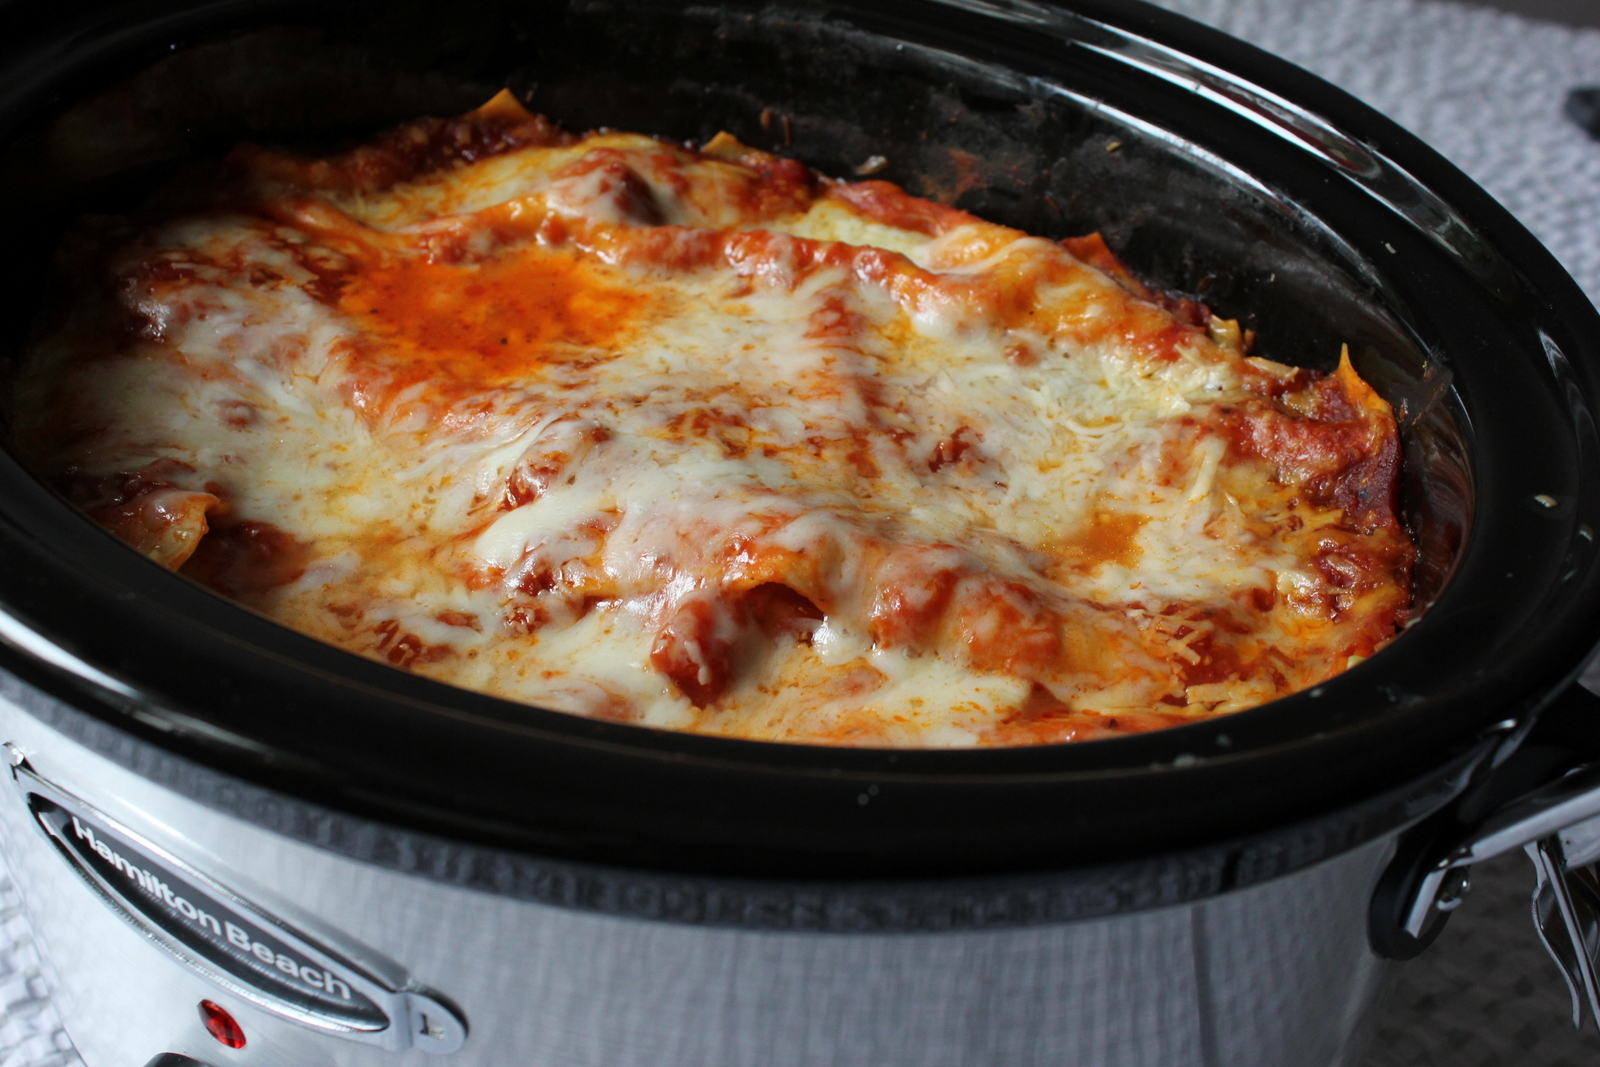 Awesome Slow Cooker / Crockpot Lasagna